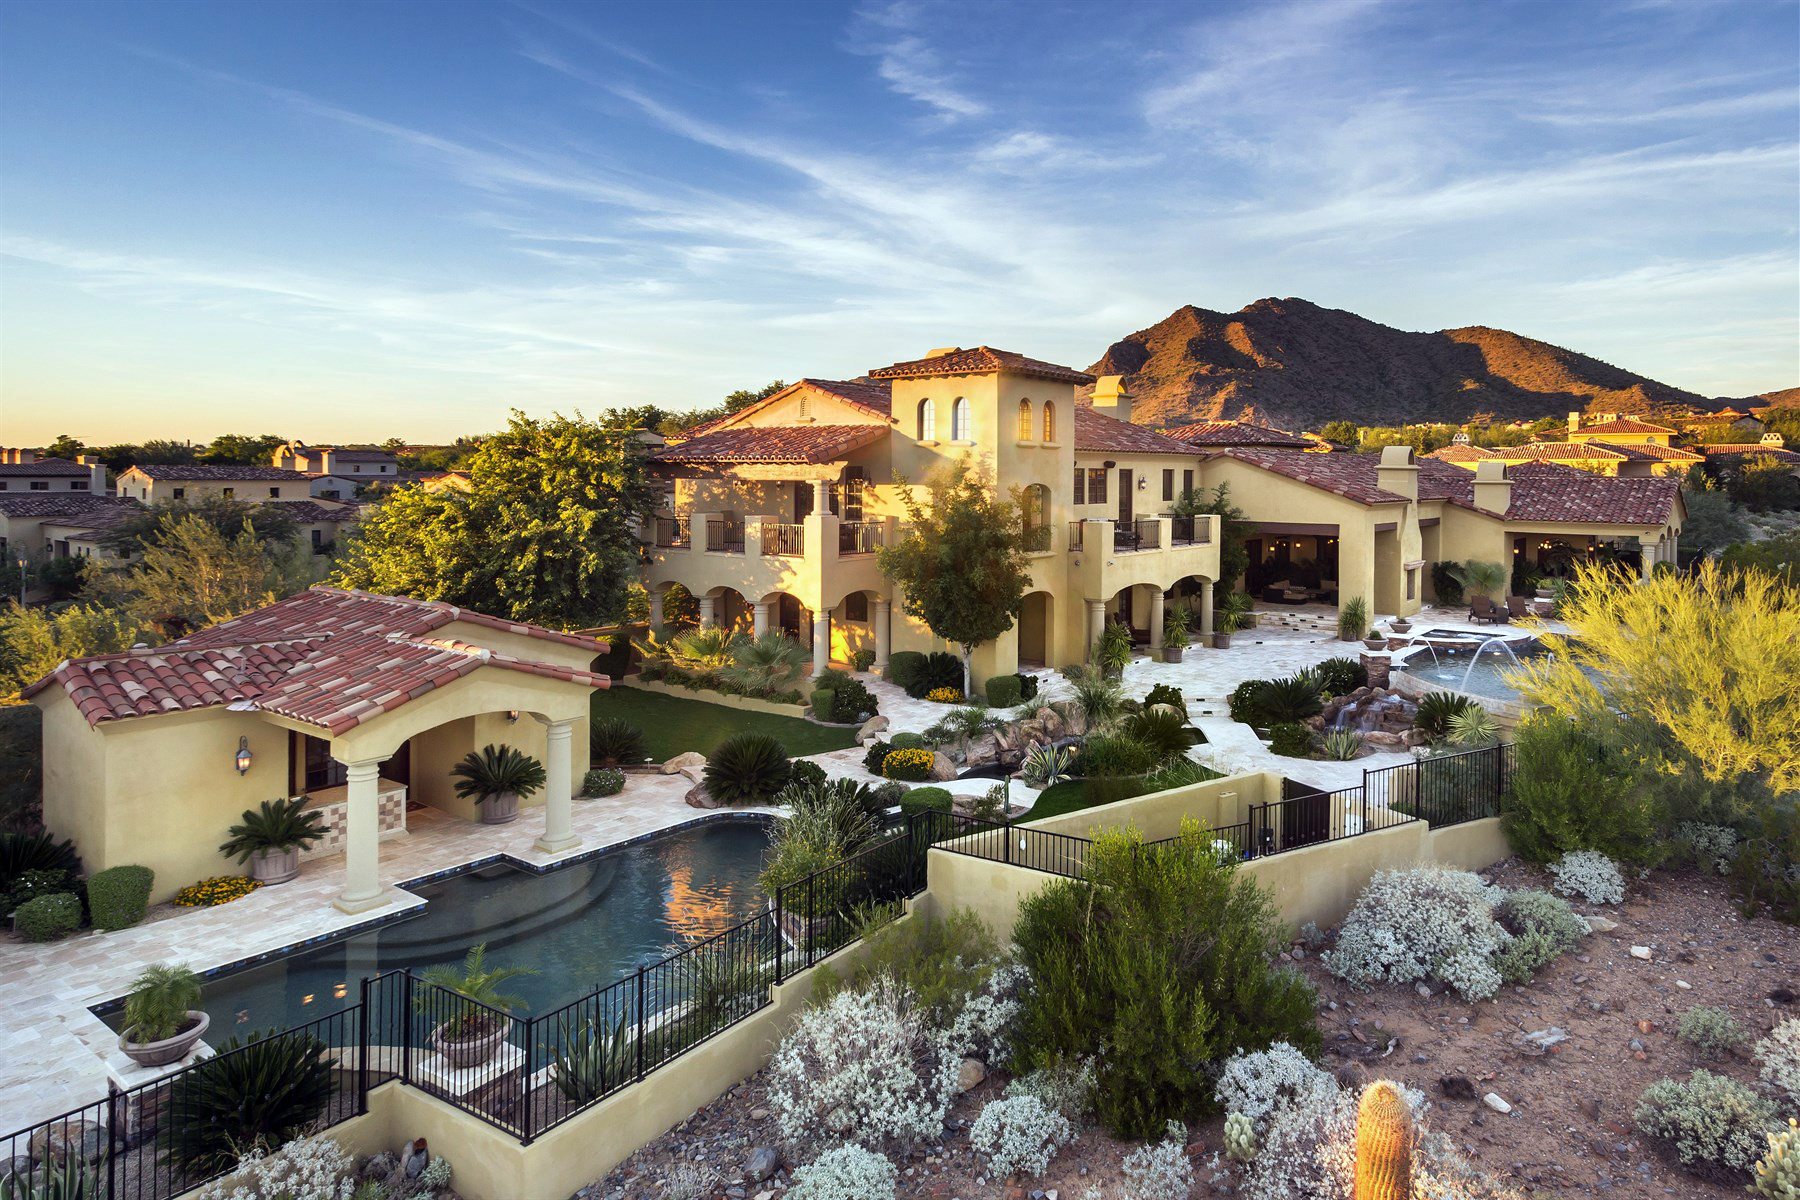 Single Family Home for Sale at Deluxe Custom Residence In The Esteemed Exclusive Community Of Silverleaf 10211 E Chino Drive #1149 Scottsdale, Arizona 85255 United States